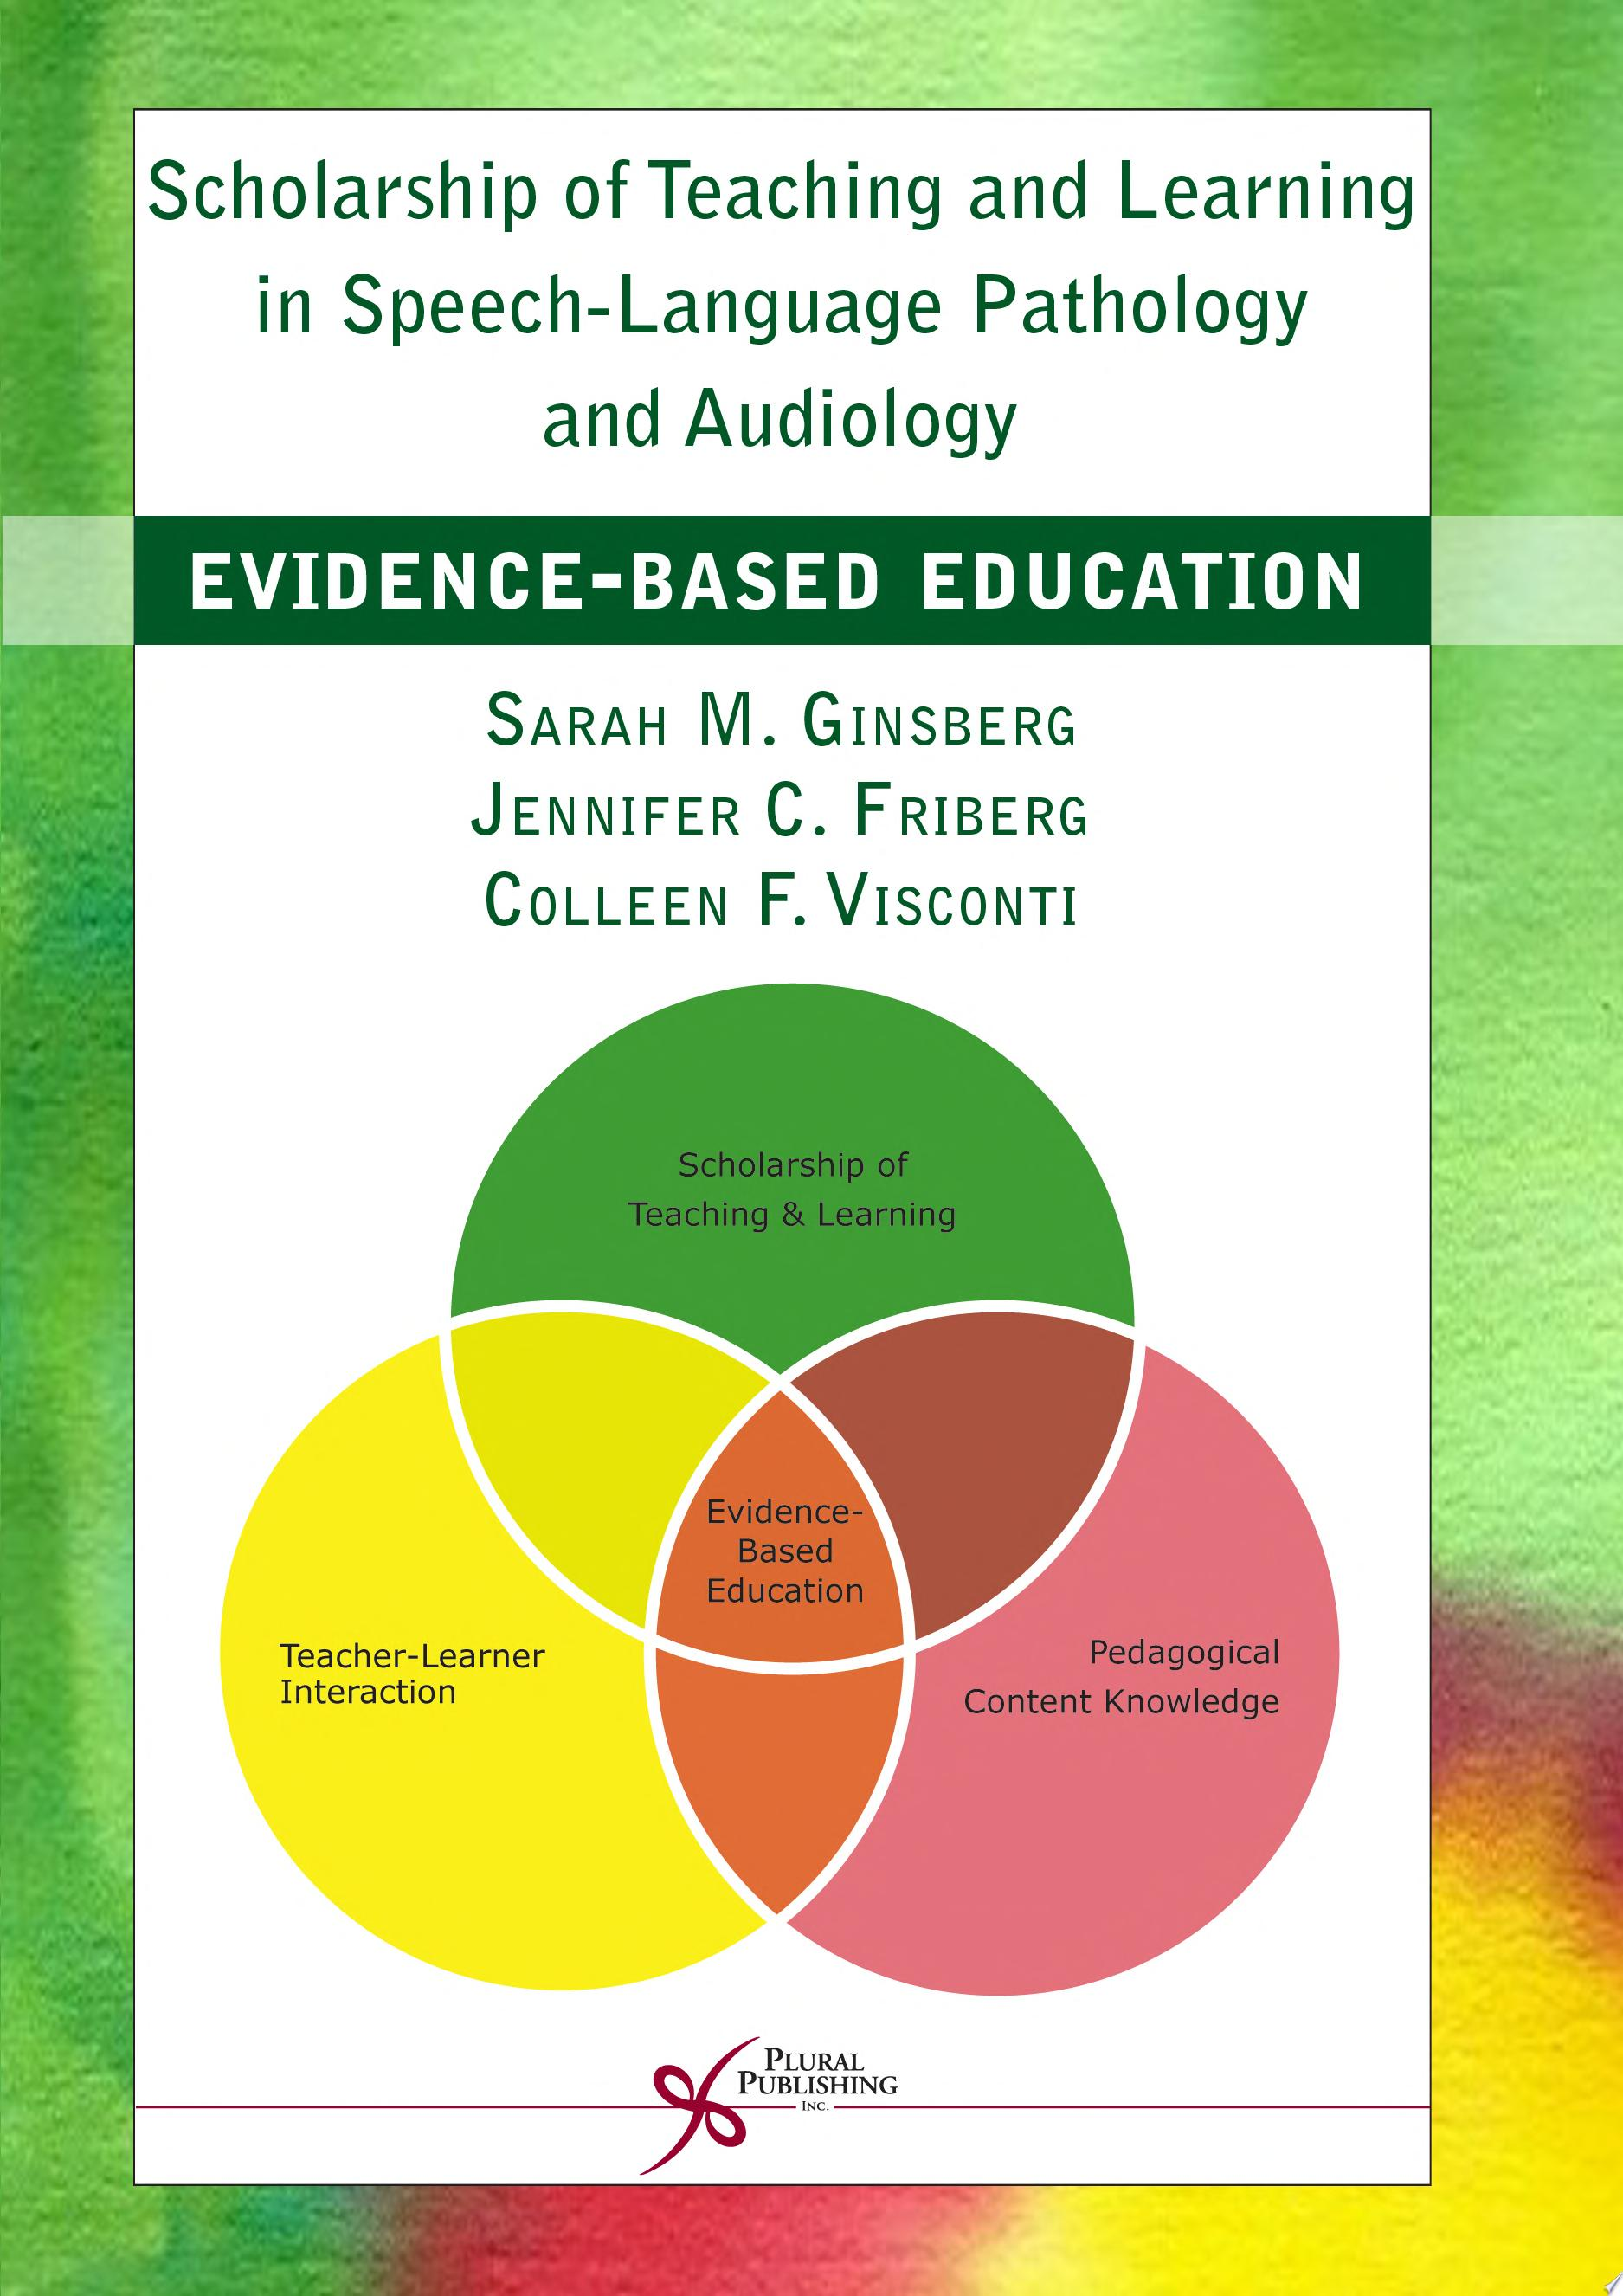 Scholarship of Teaching and Learning in Speech Language Pathology and Audiology